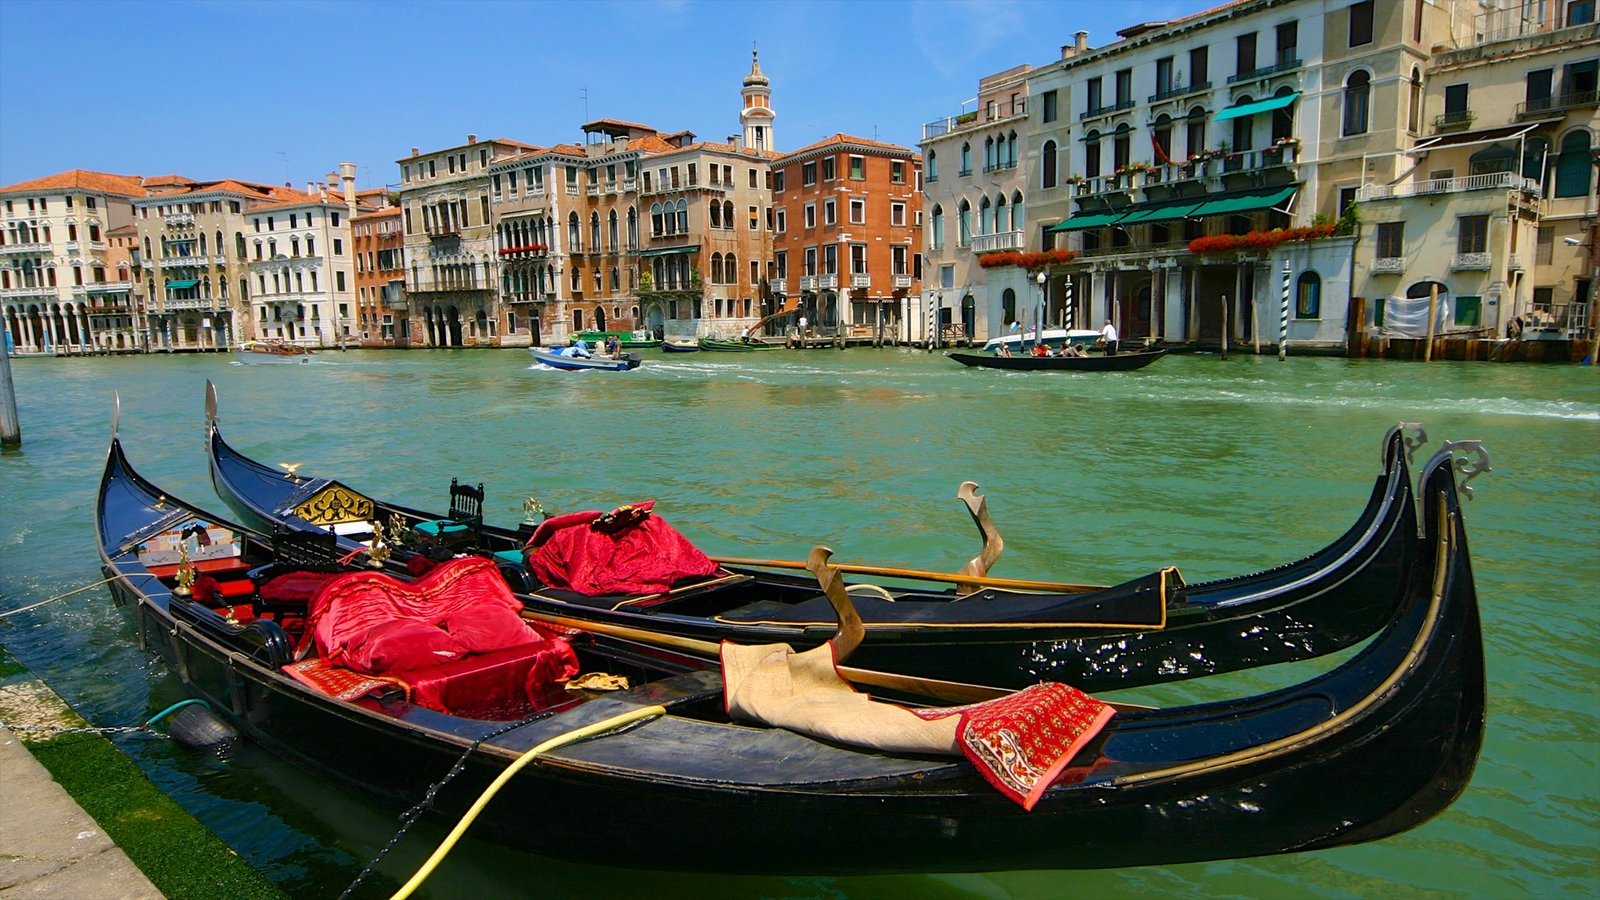 Grand Canal which includes boating, a river or creek and heritage architecture